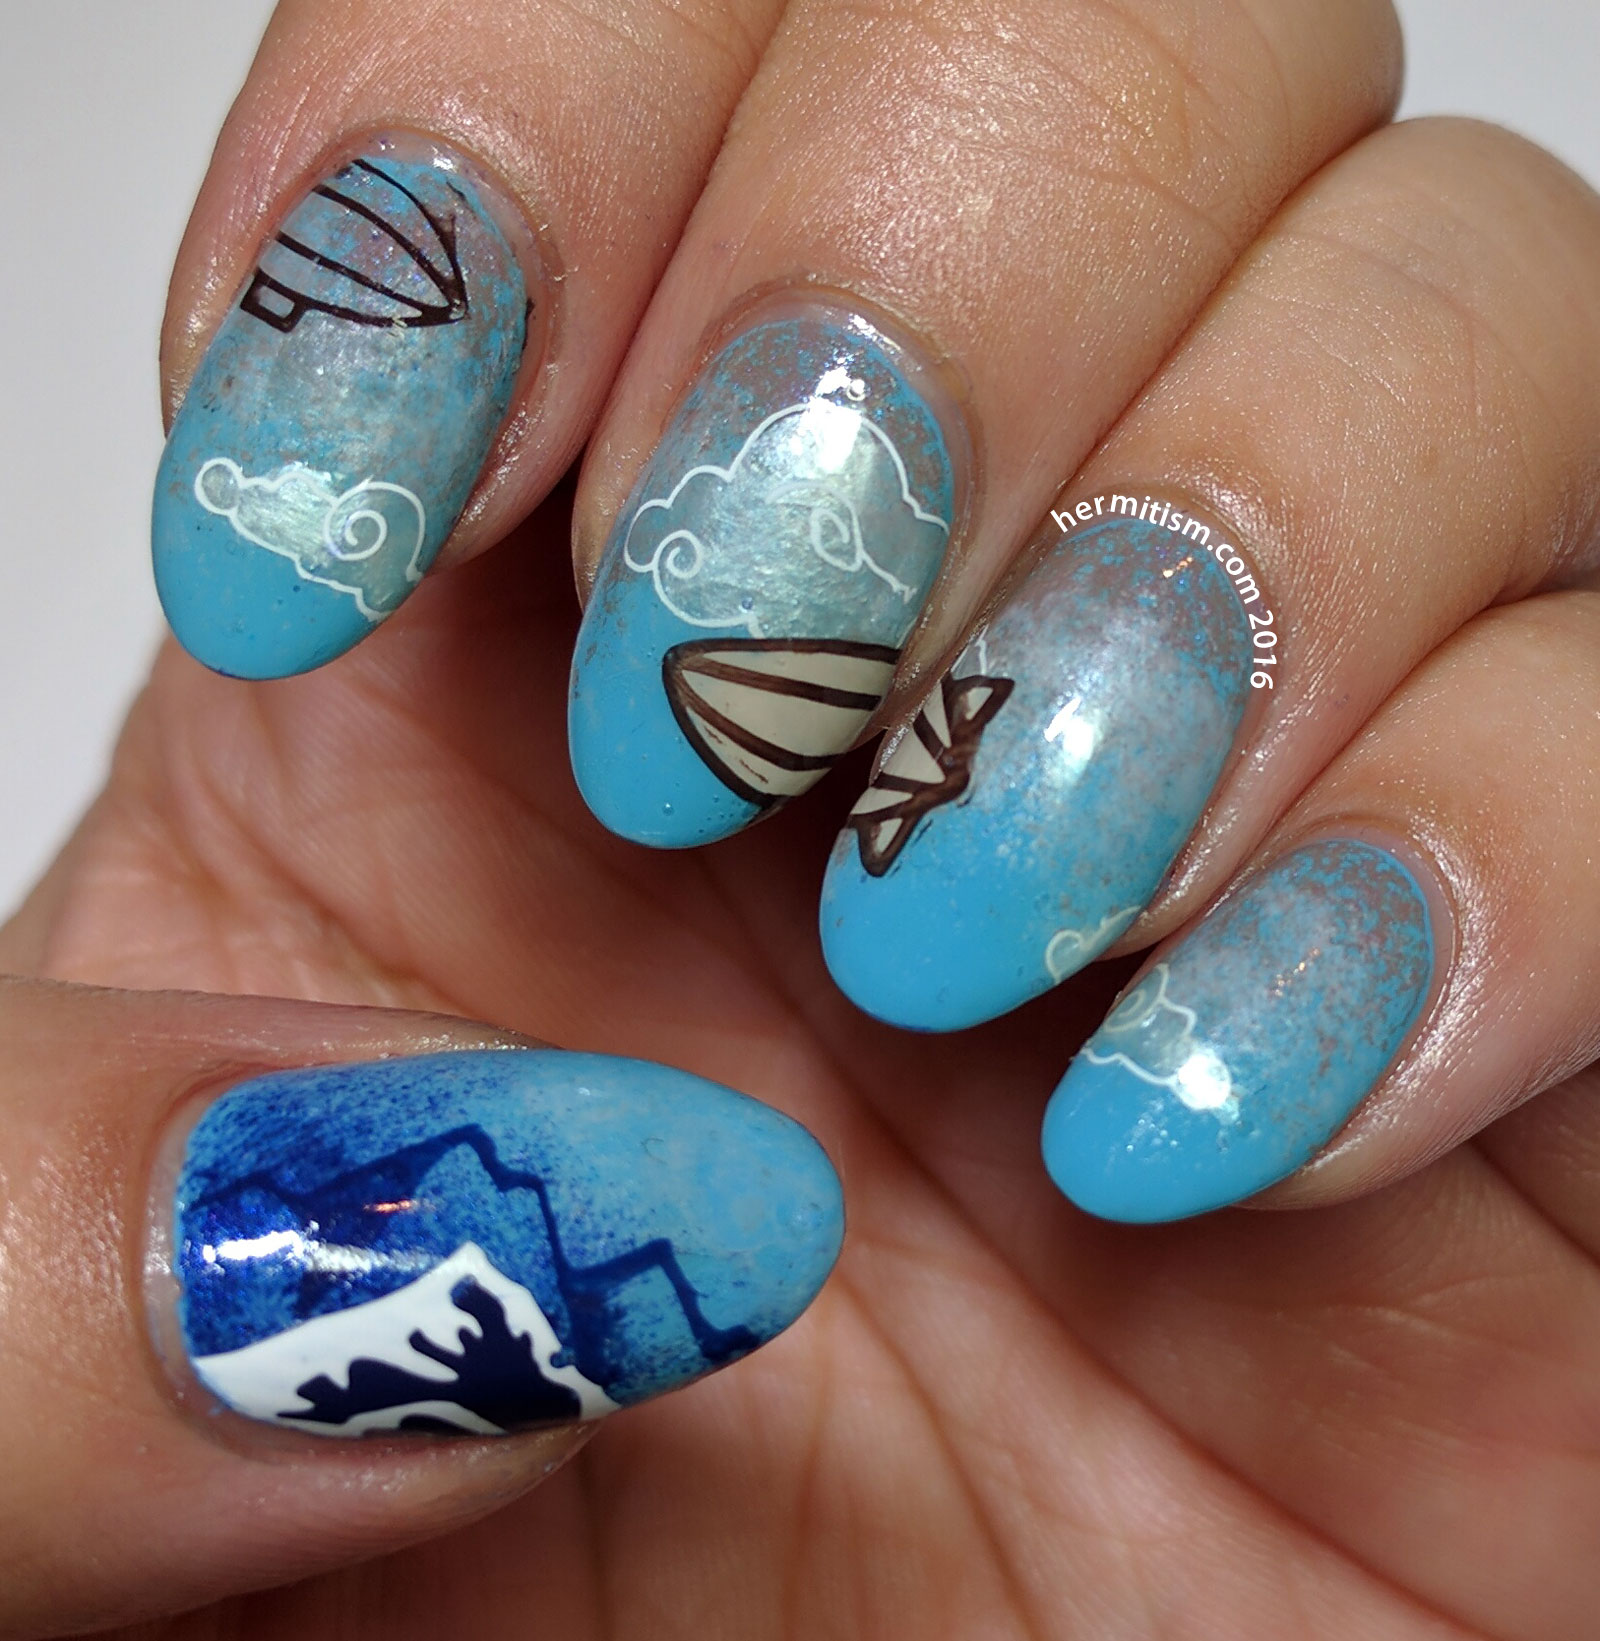 Z is for Zeppelin - ABC Nail Art Challenge - Hermit Werds